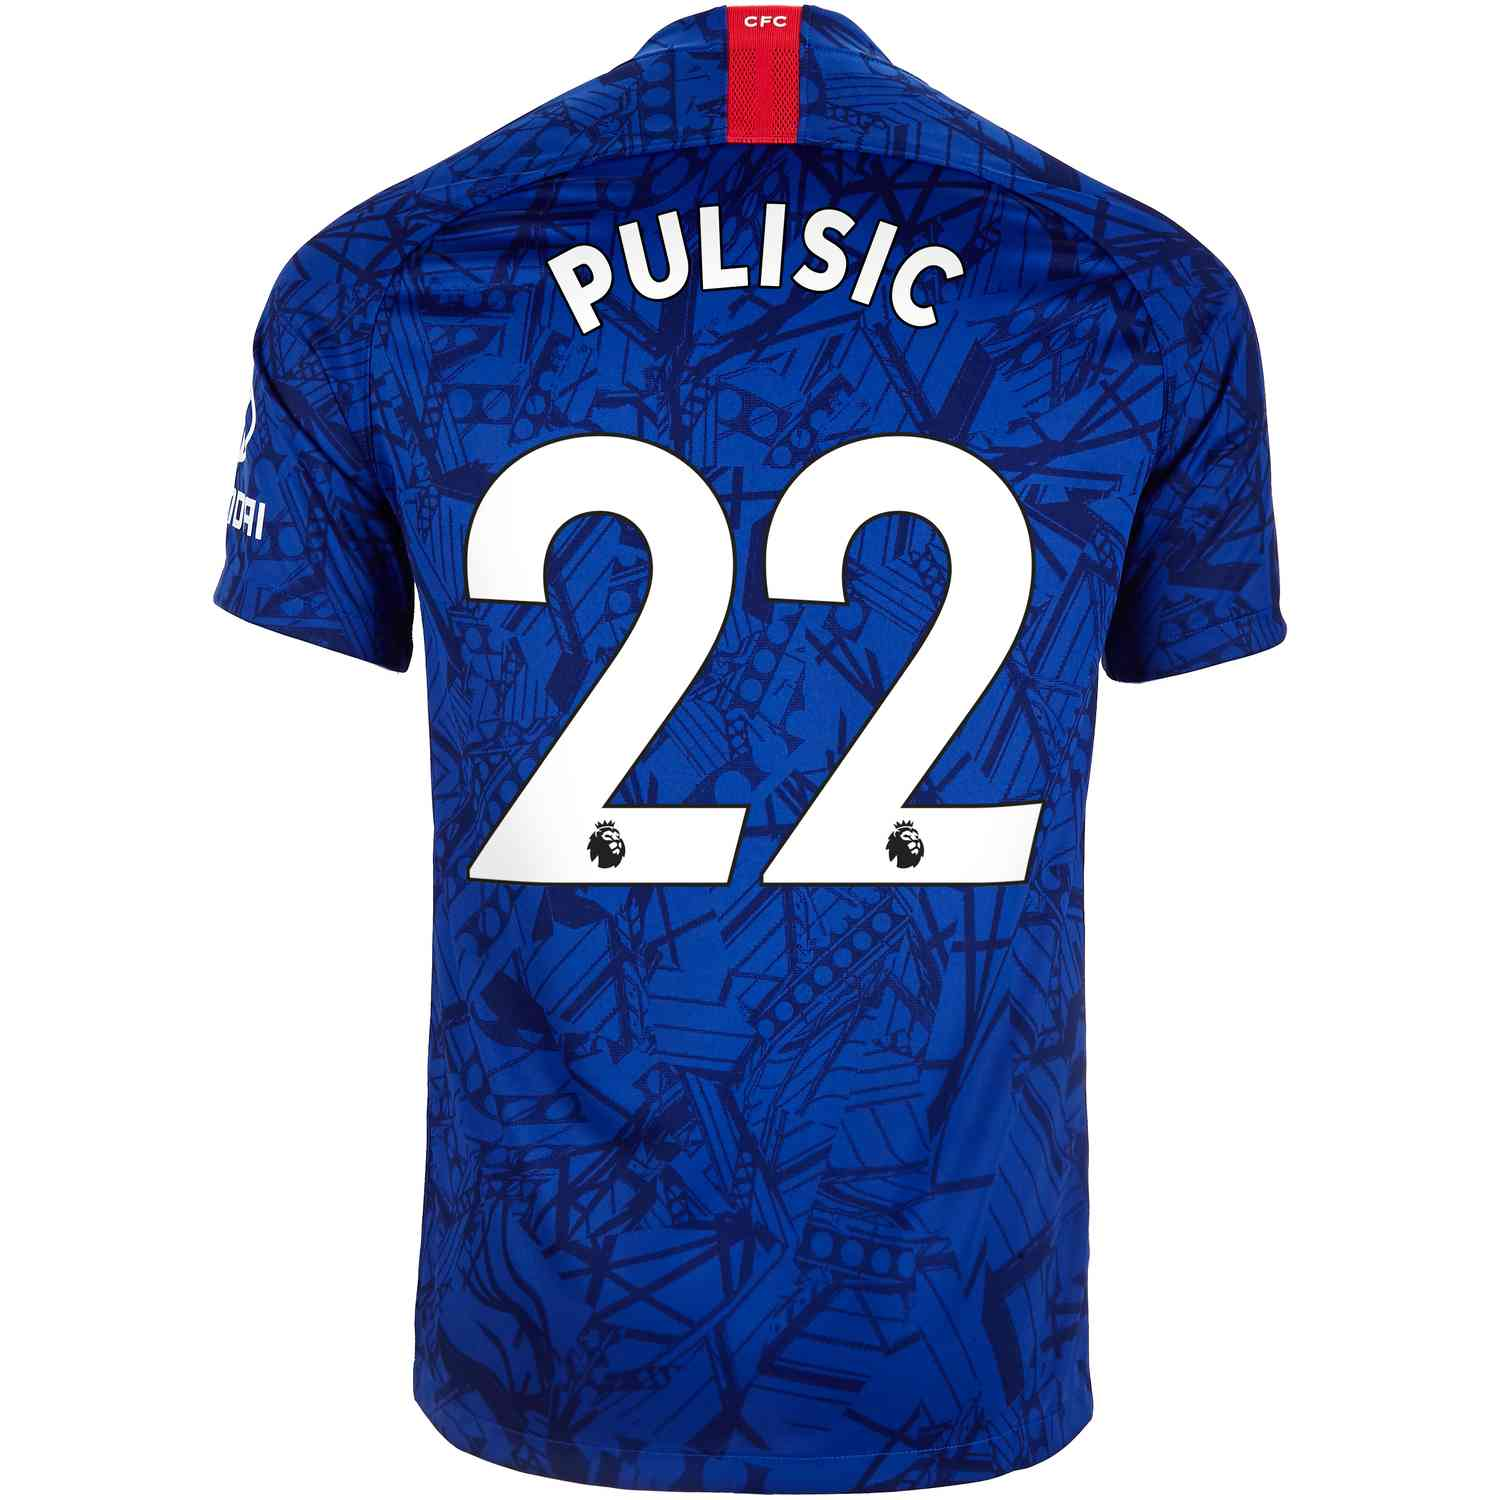 brand new e4557 05e3c 2019/20 Christian Pulisic Chelsea Home Jersey